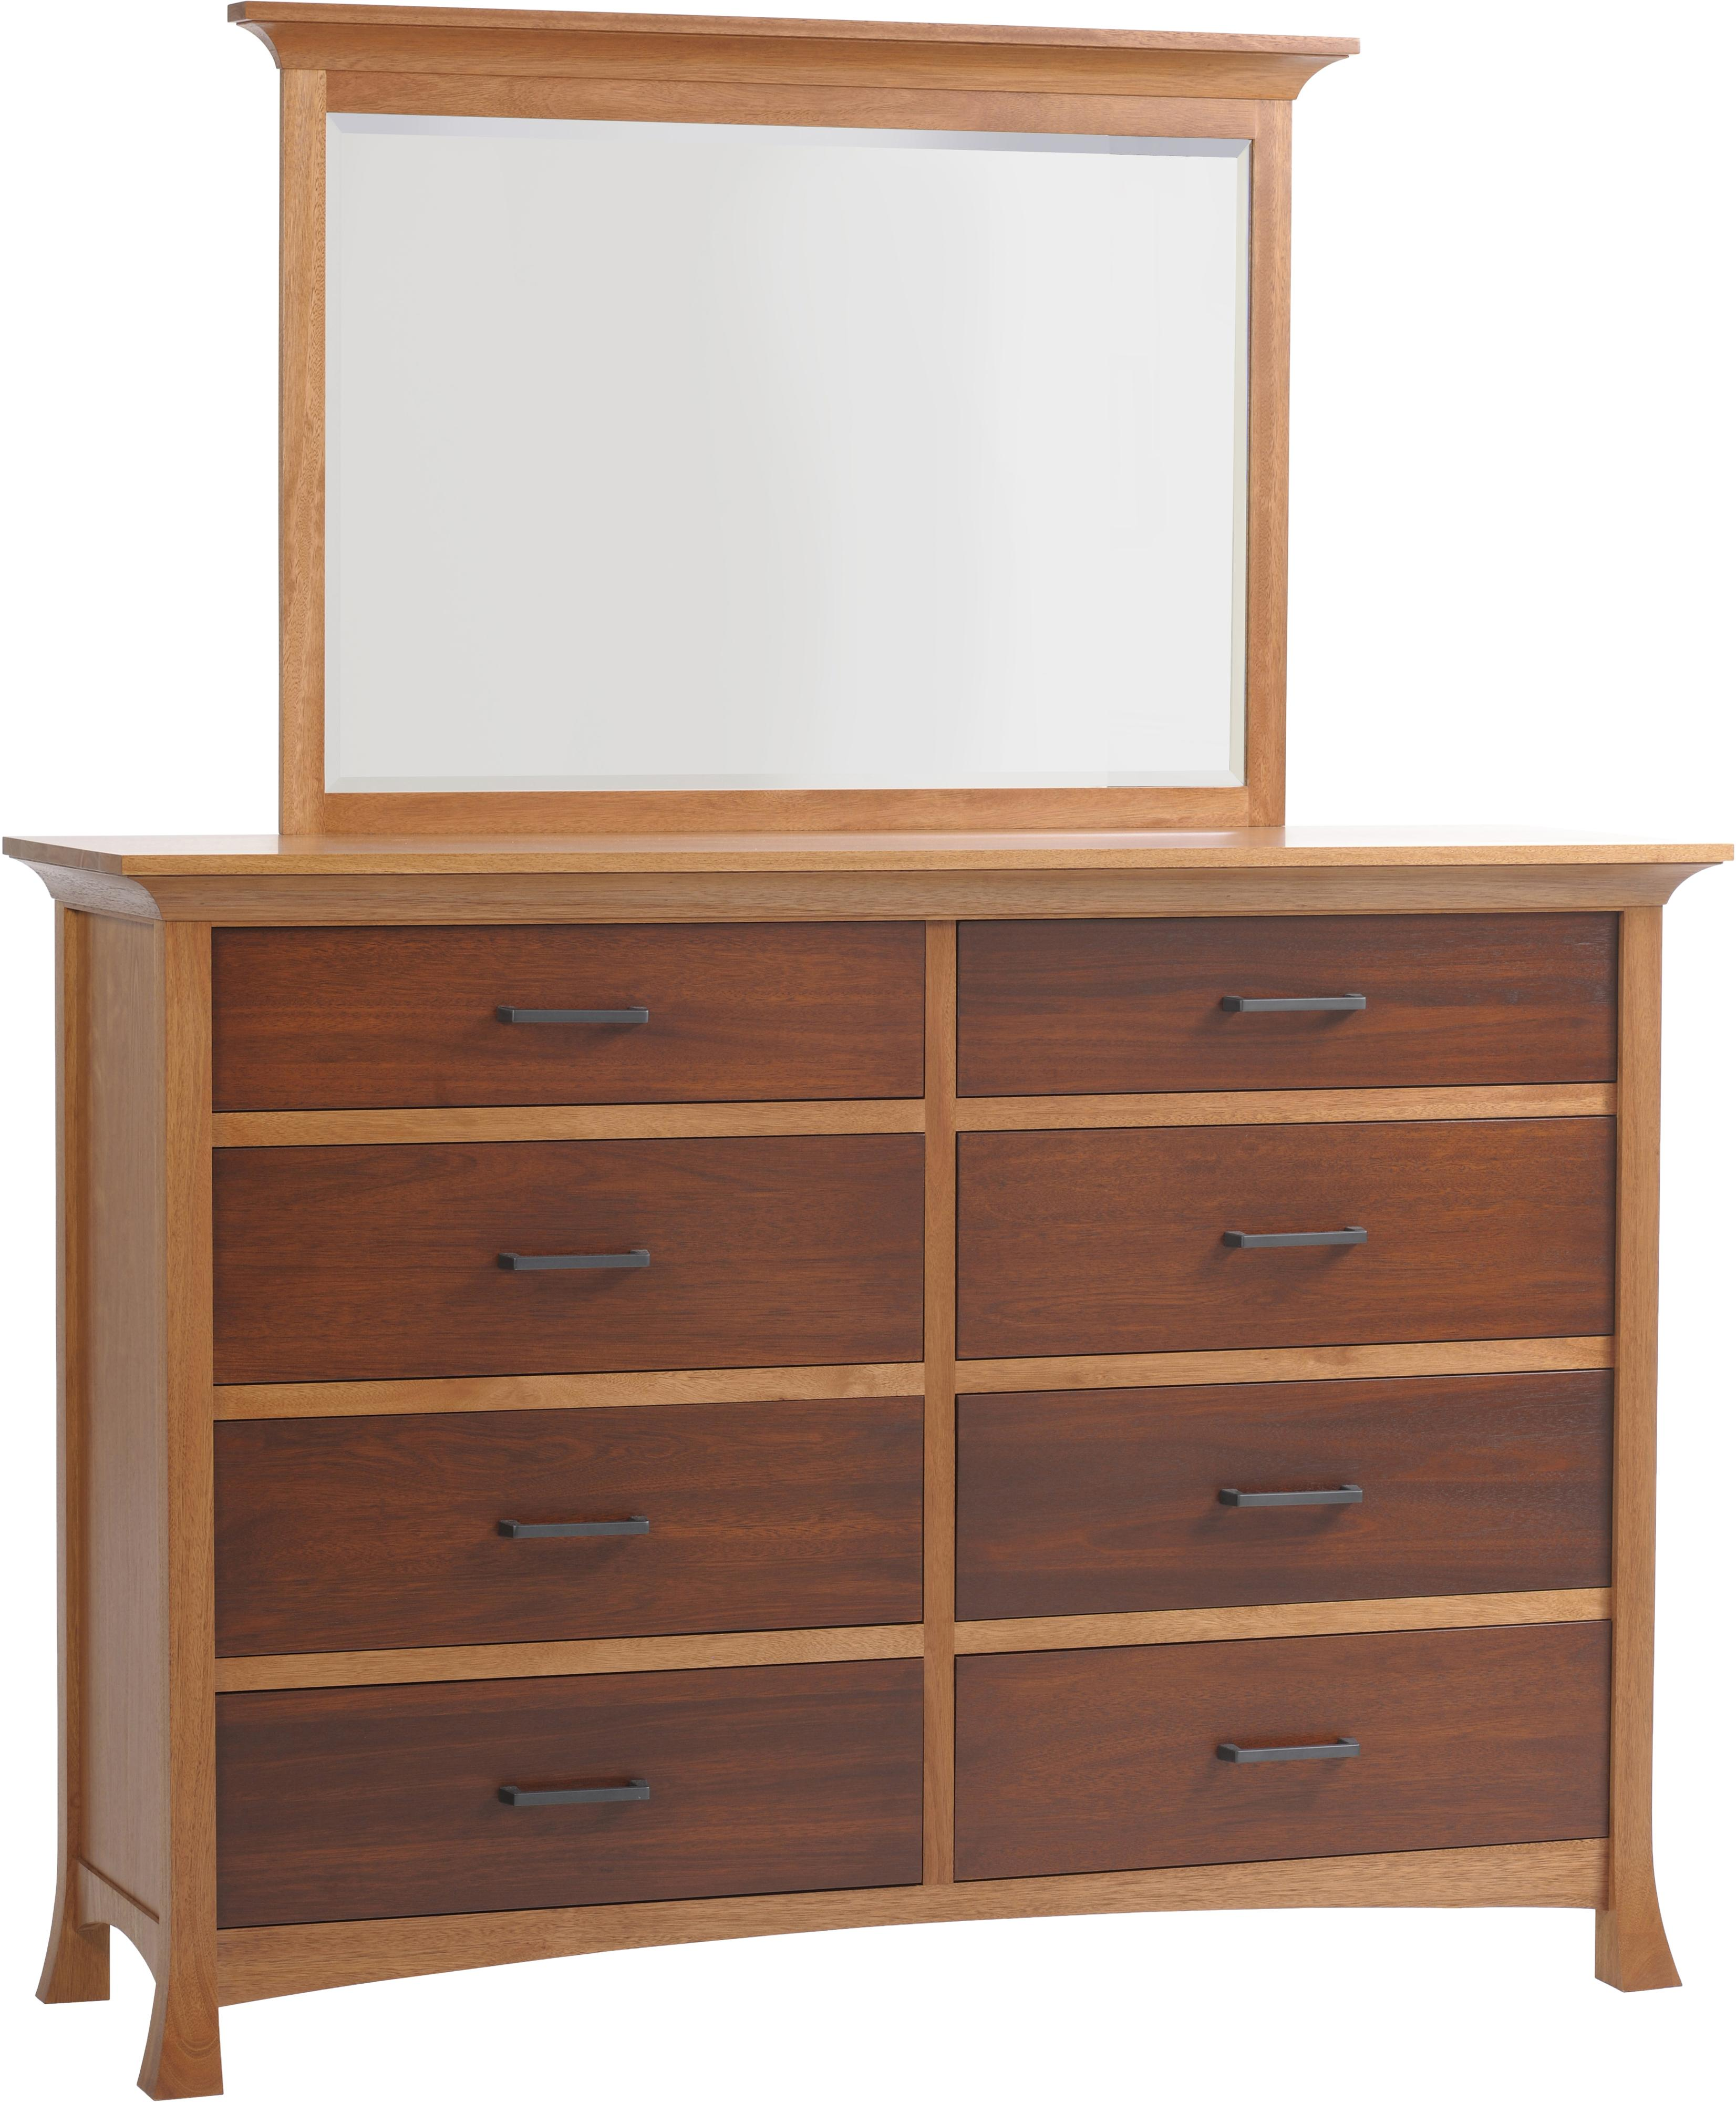 Oasis High Dresser and Mirror by Millcraft at Saugerties Furniture Mart